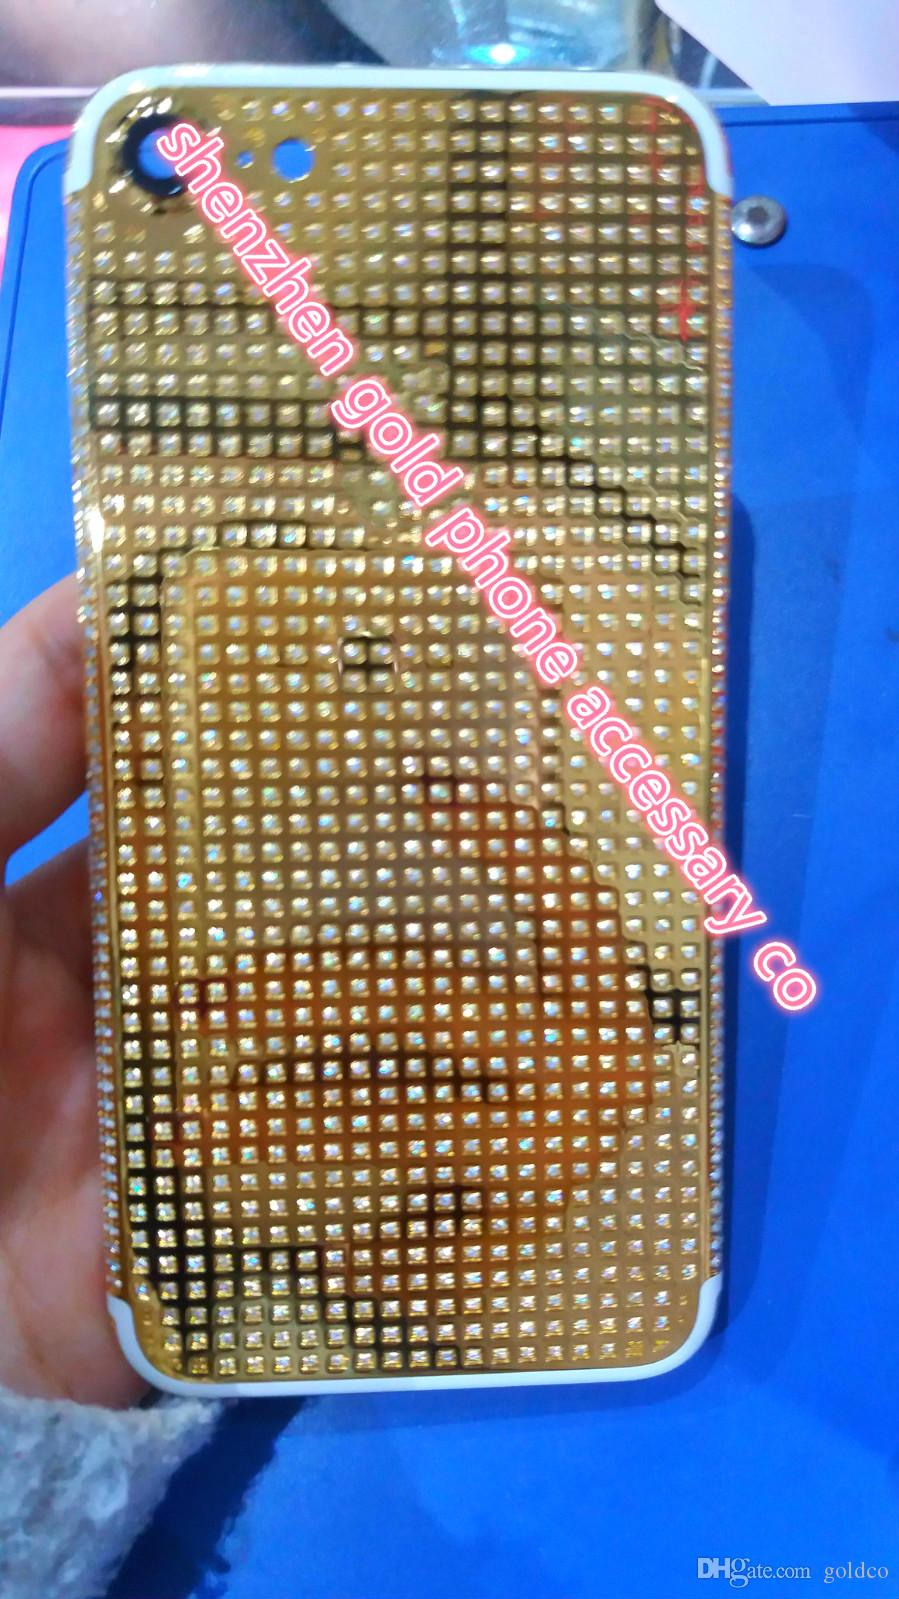 2019 Wholesale For Iphone 7 24k 24kt 24ct Rose Gold Limited Edition Back Cover Housing Replacement Middle Frame With Logo Full Swarovski Zirconia From